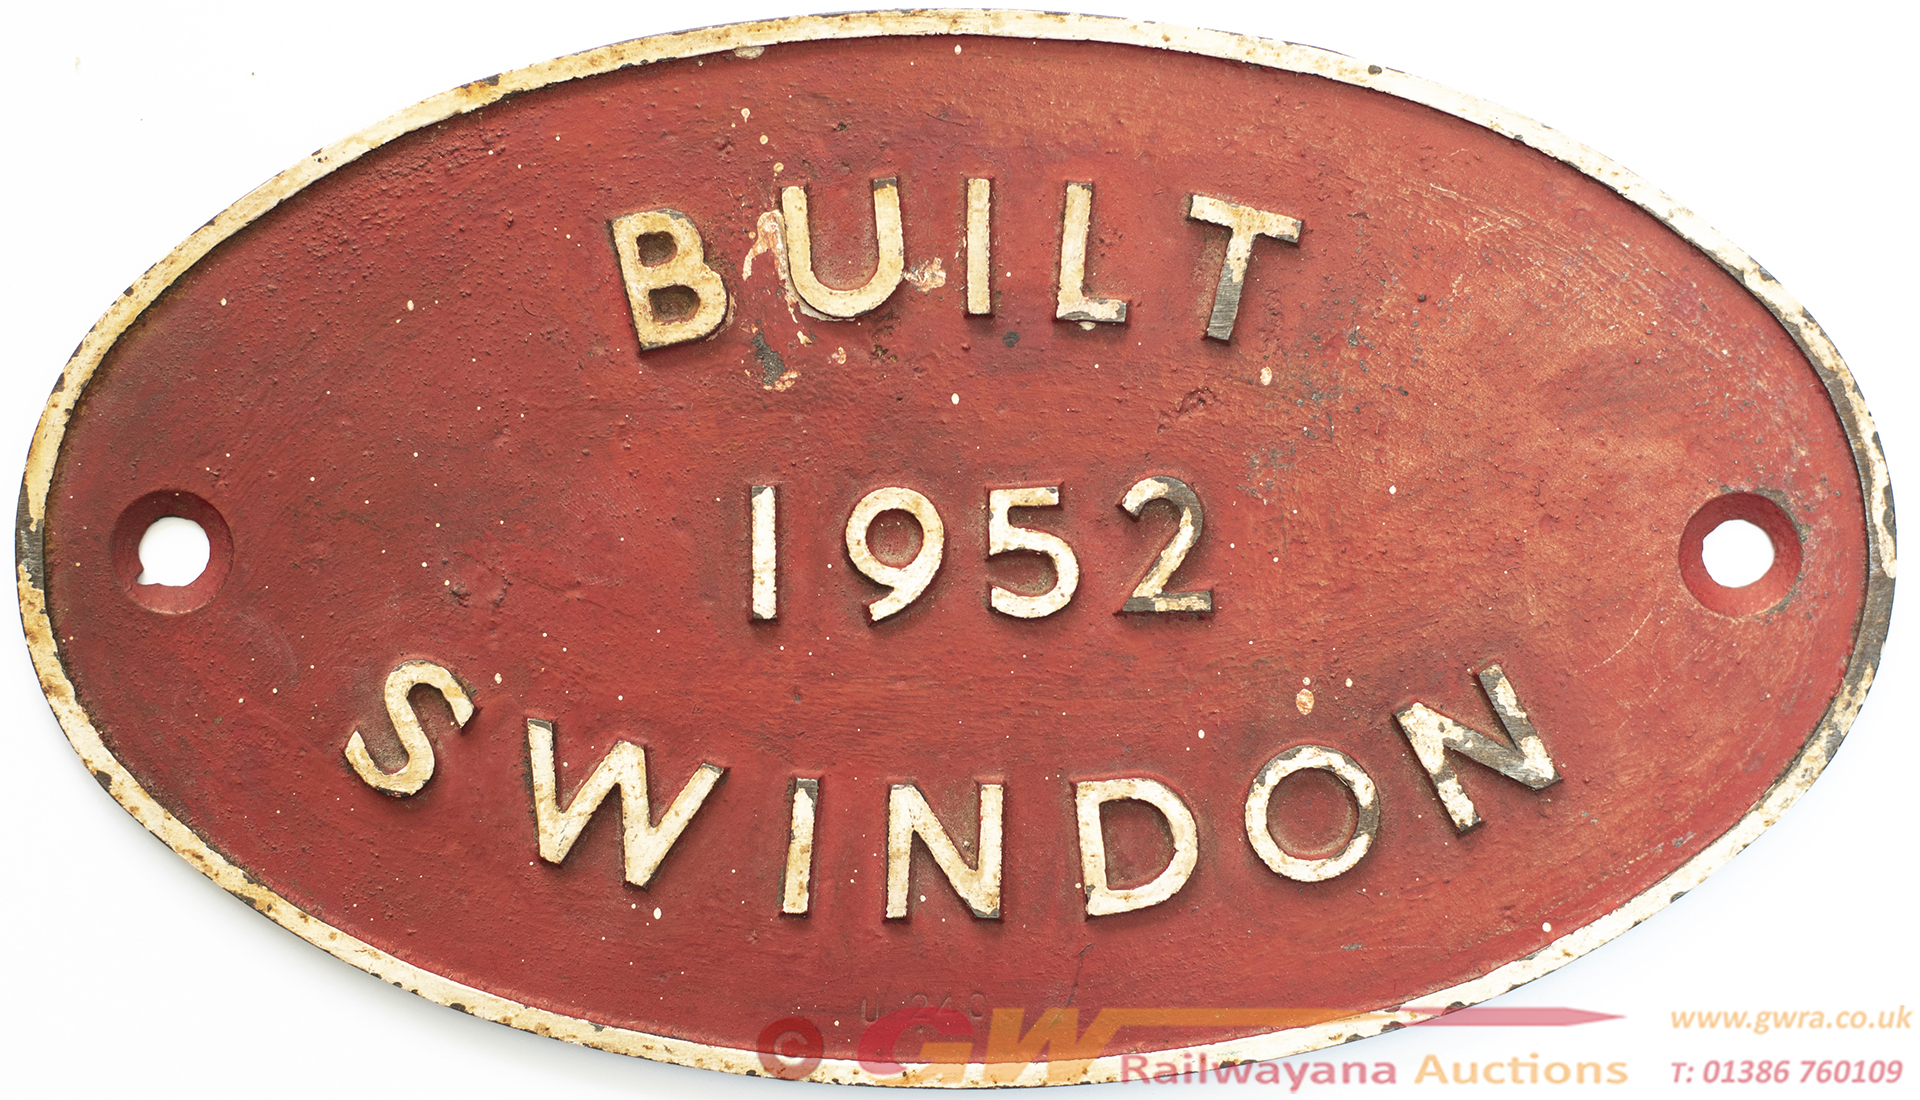 Worksplate BUILT 1952 SWINDON Ex British Railways